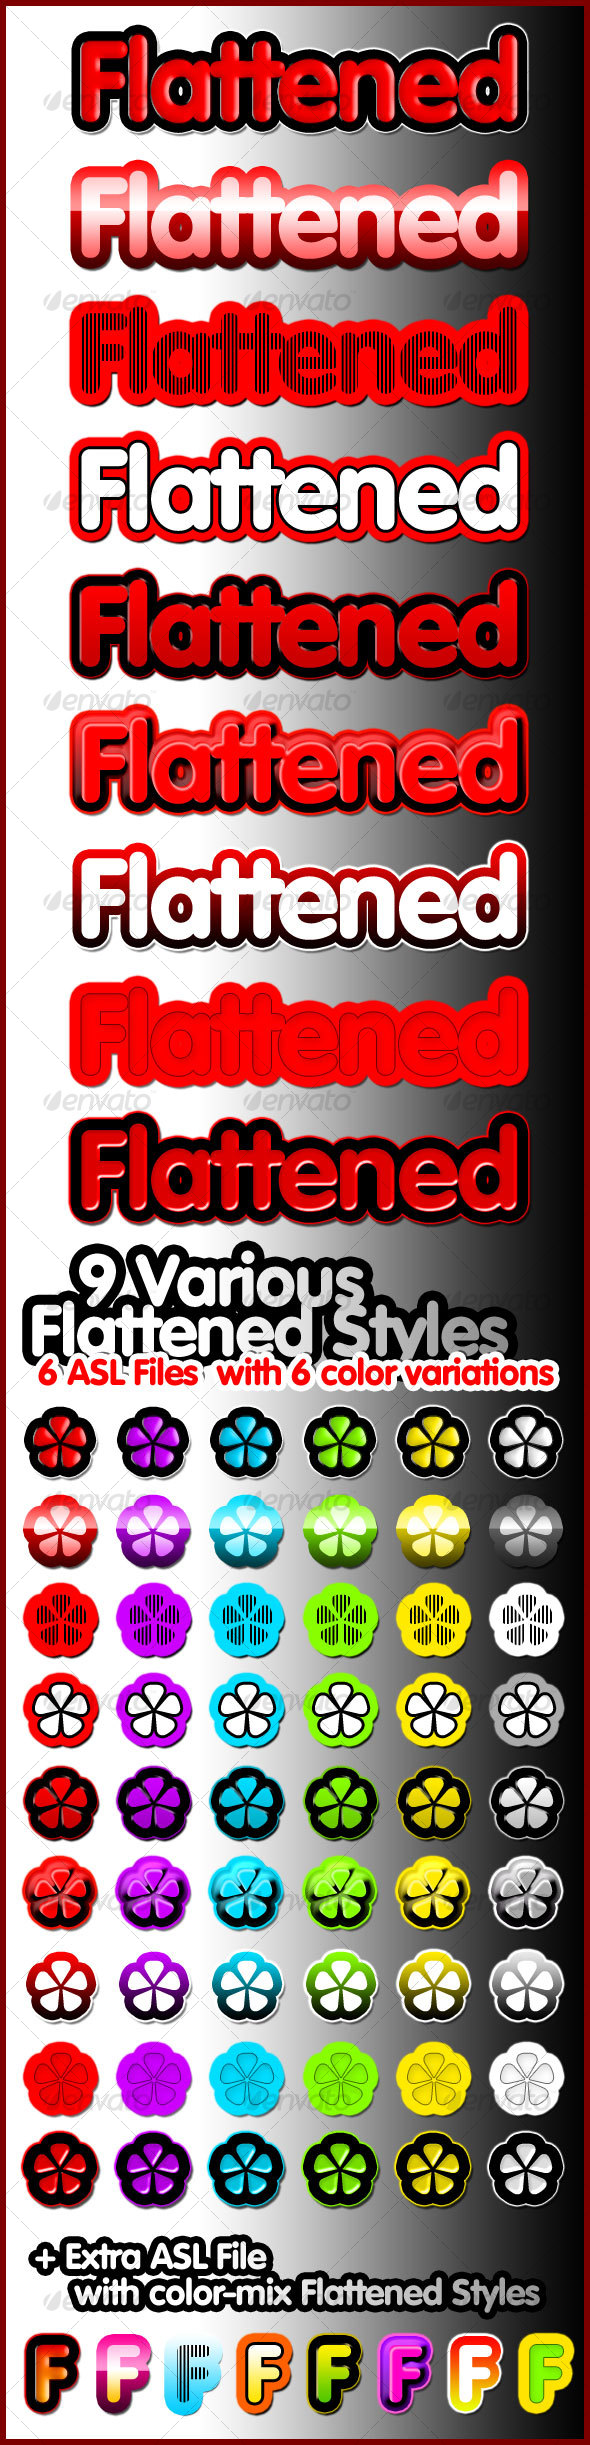 GraphicRiver 9 Various Flattened Styles 57562